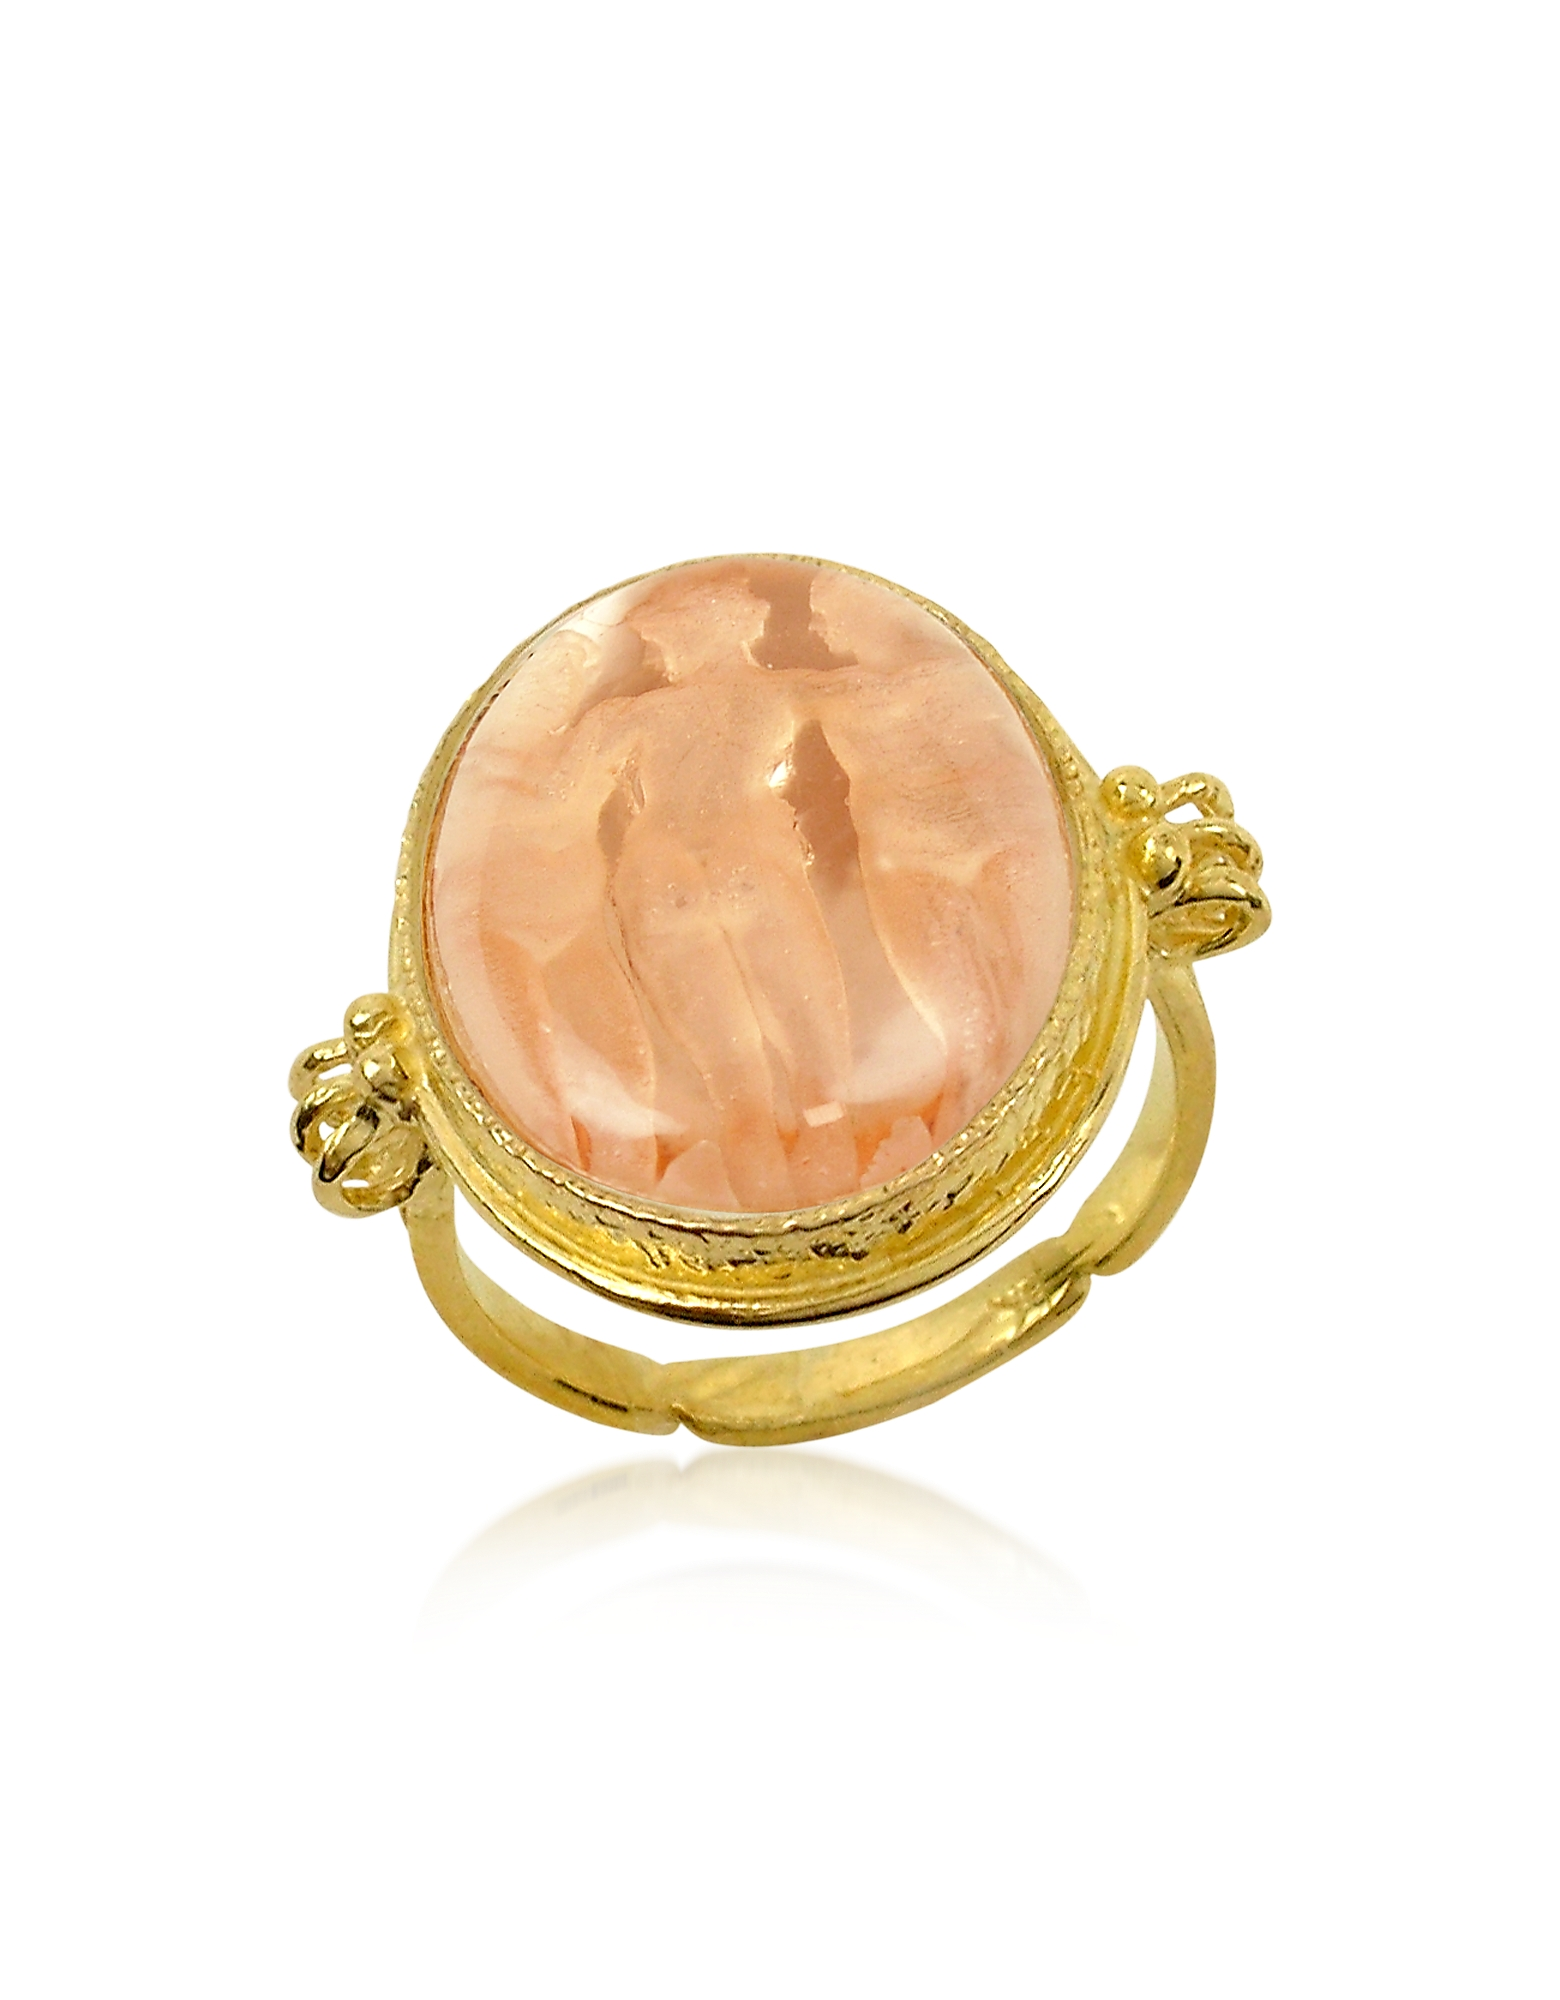 Tagliamonte Cameo, Three Graces - 18K Gold Rose Mother of Pearl Cameo Ring